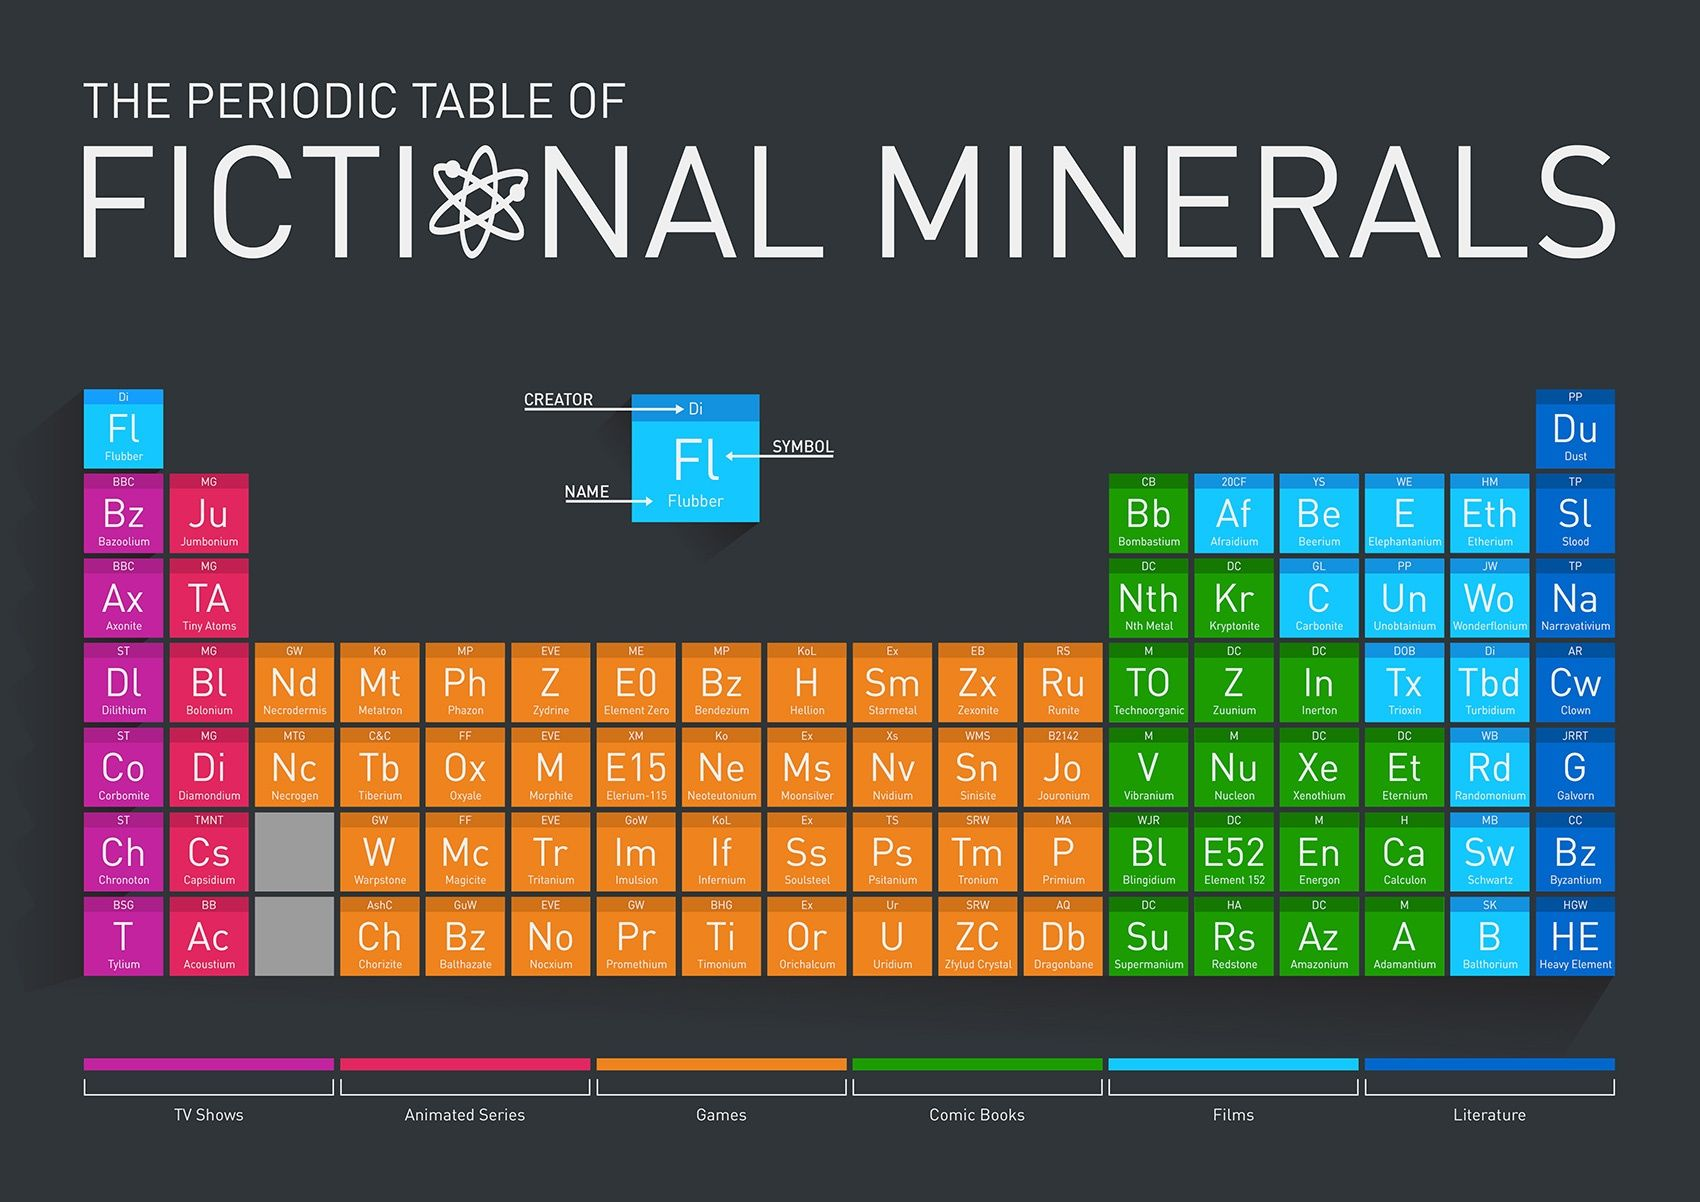 How many fictional elements or minerals can you name surely surely adamantium kryptonite have you forgotten about flubber and vibranium to jog your memory this helpful periodic table lists 88 fictional elements urtaz Gallery